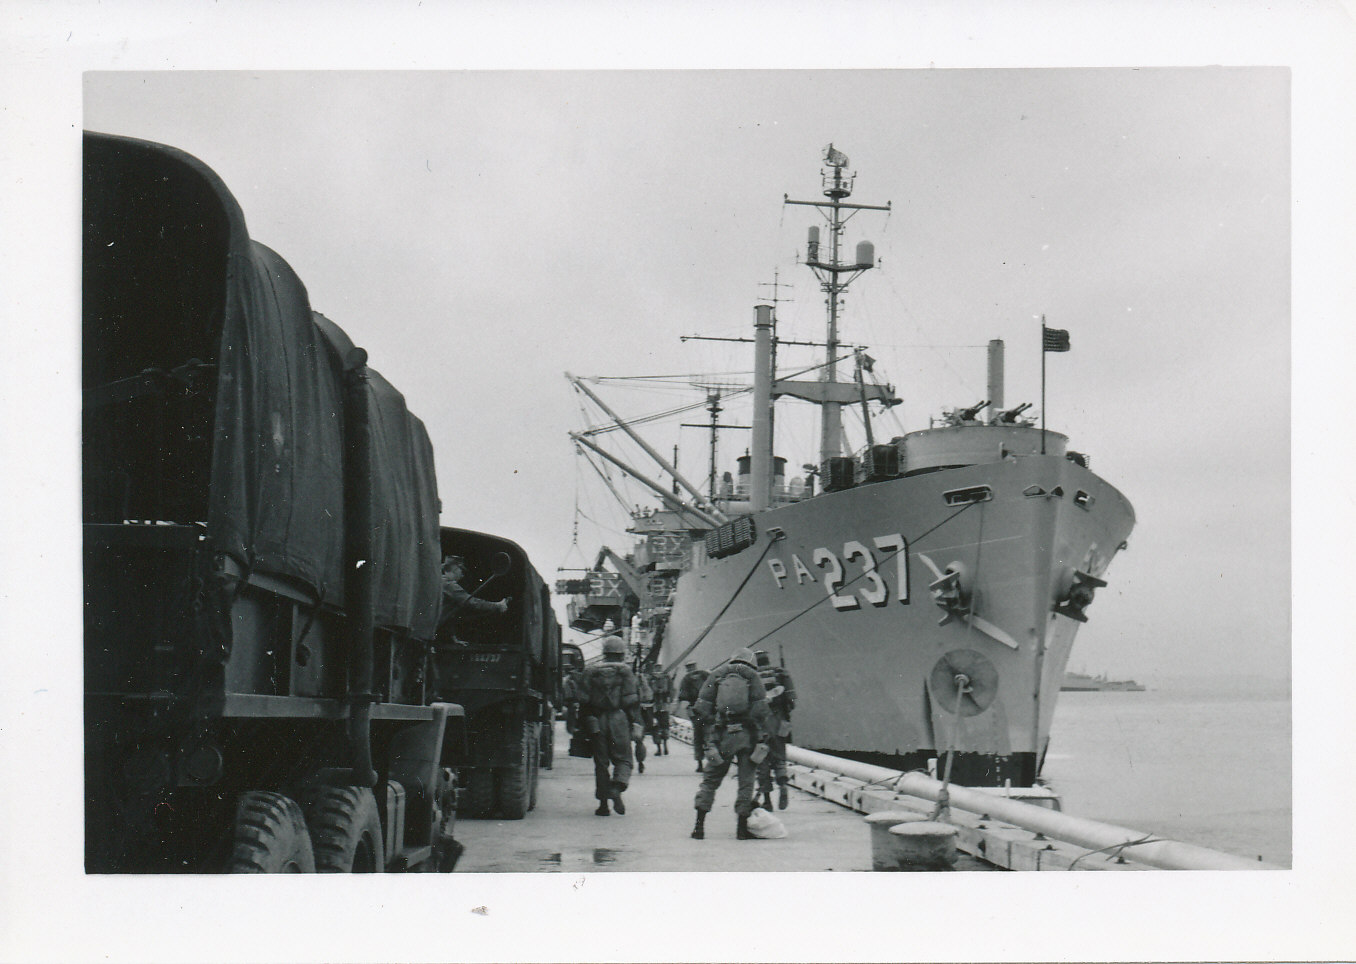 soldiers walking between a line of jeeps and a navy ship